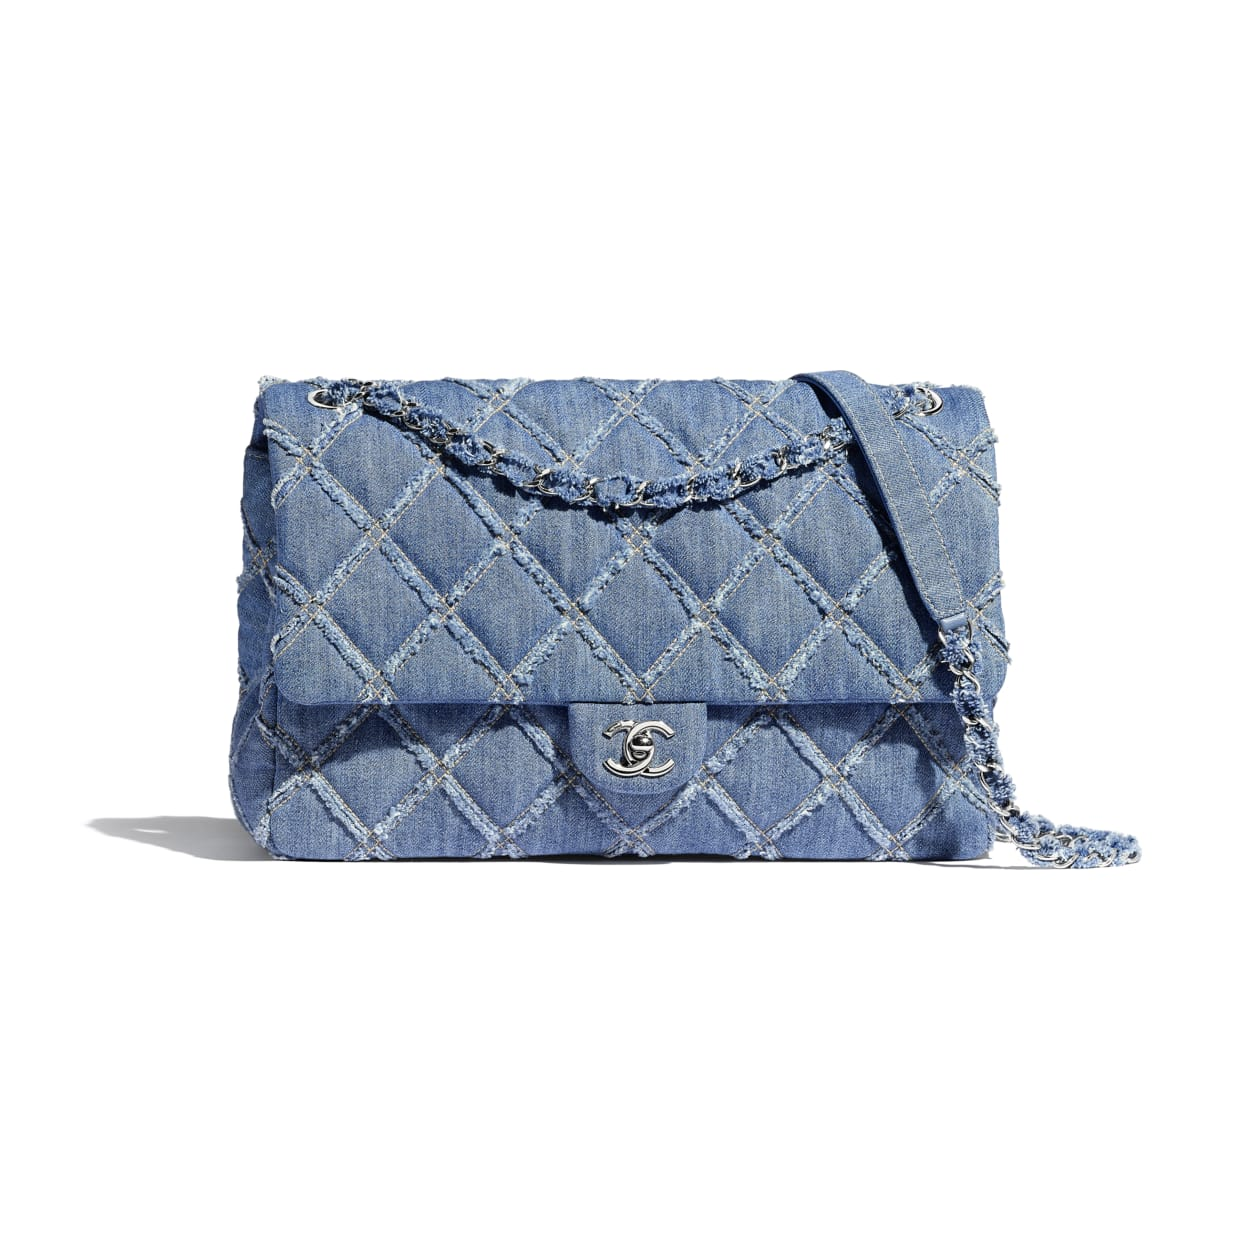 Large Flap Bag by Chanel, available on chanel.com for $3900 Kylie Jenner Bags Exact Product